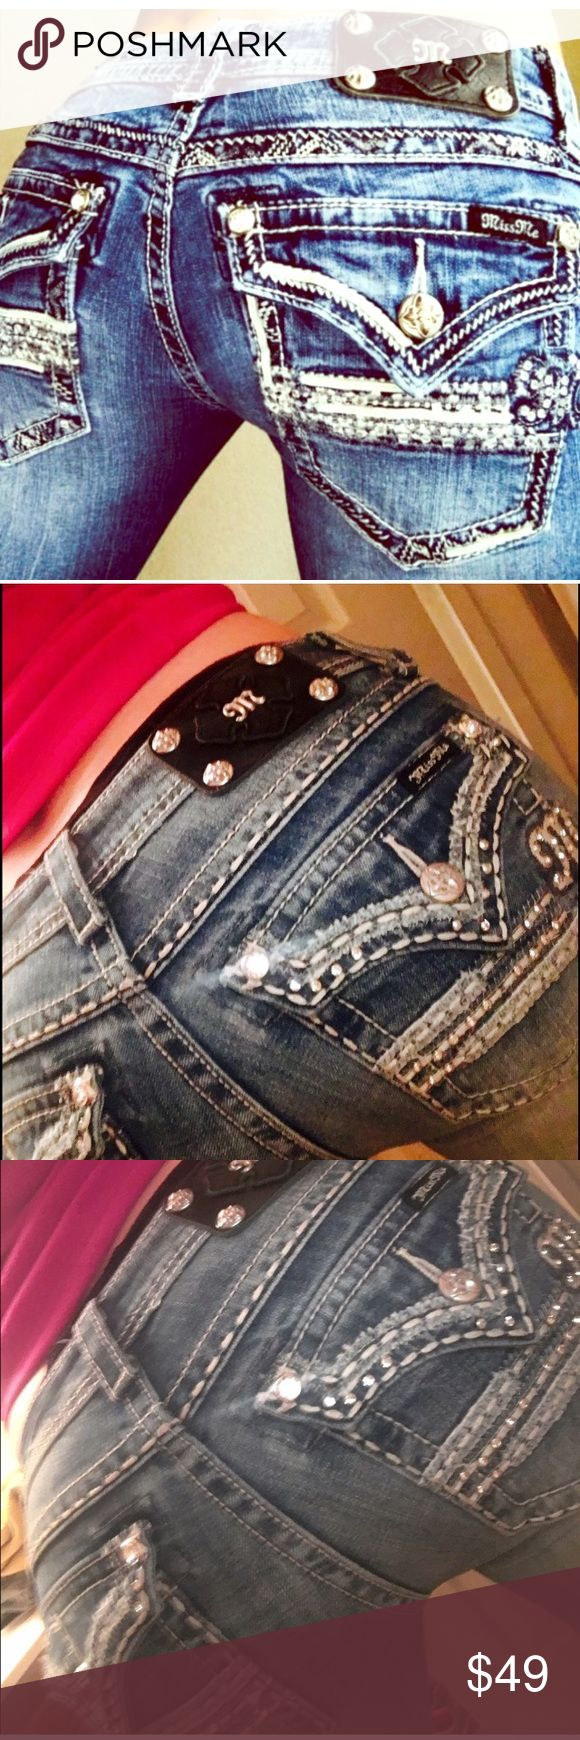 ❤️ SOOO SEXY Miss me Bling booty jeans size 28 💋 ❤️ SOOO SEXY Miss me Bling booty jeans size 28 💋. Makes the rear end look awesome. Some fraying at bottom. You will love the way you look in these!!! Retail $169 Miss Me Jeans Boot Cut